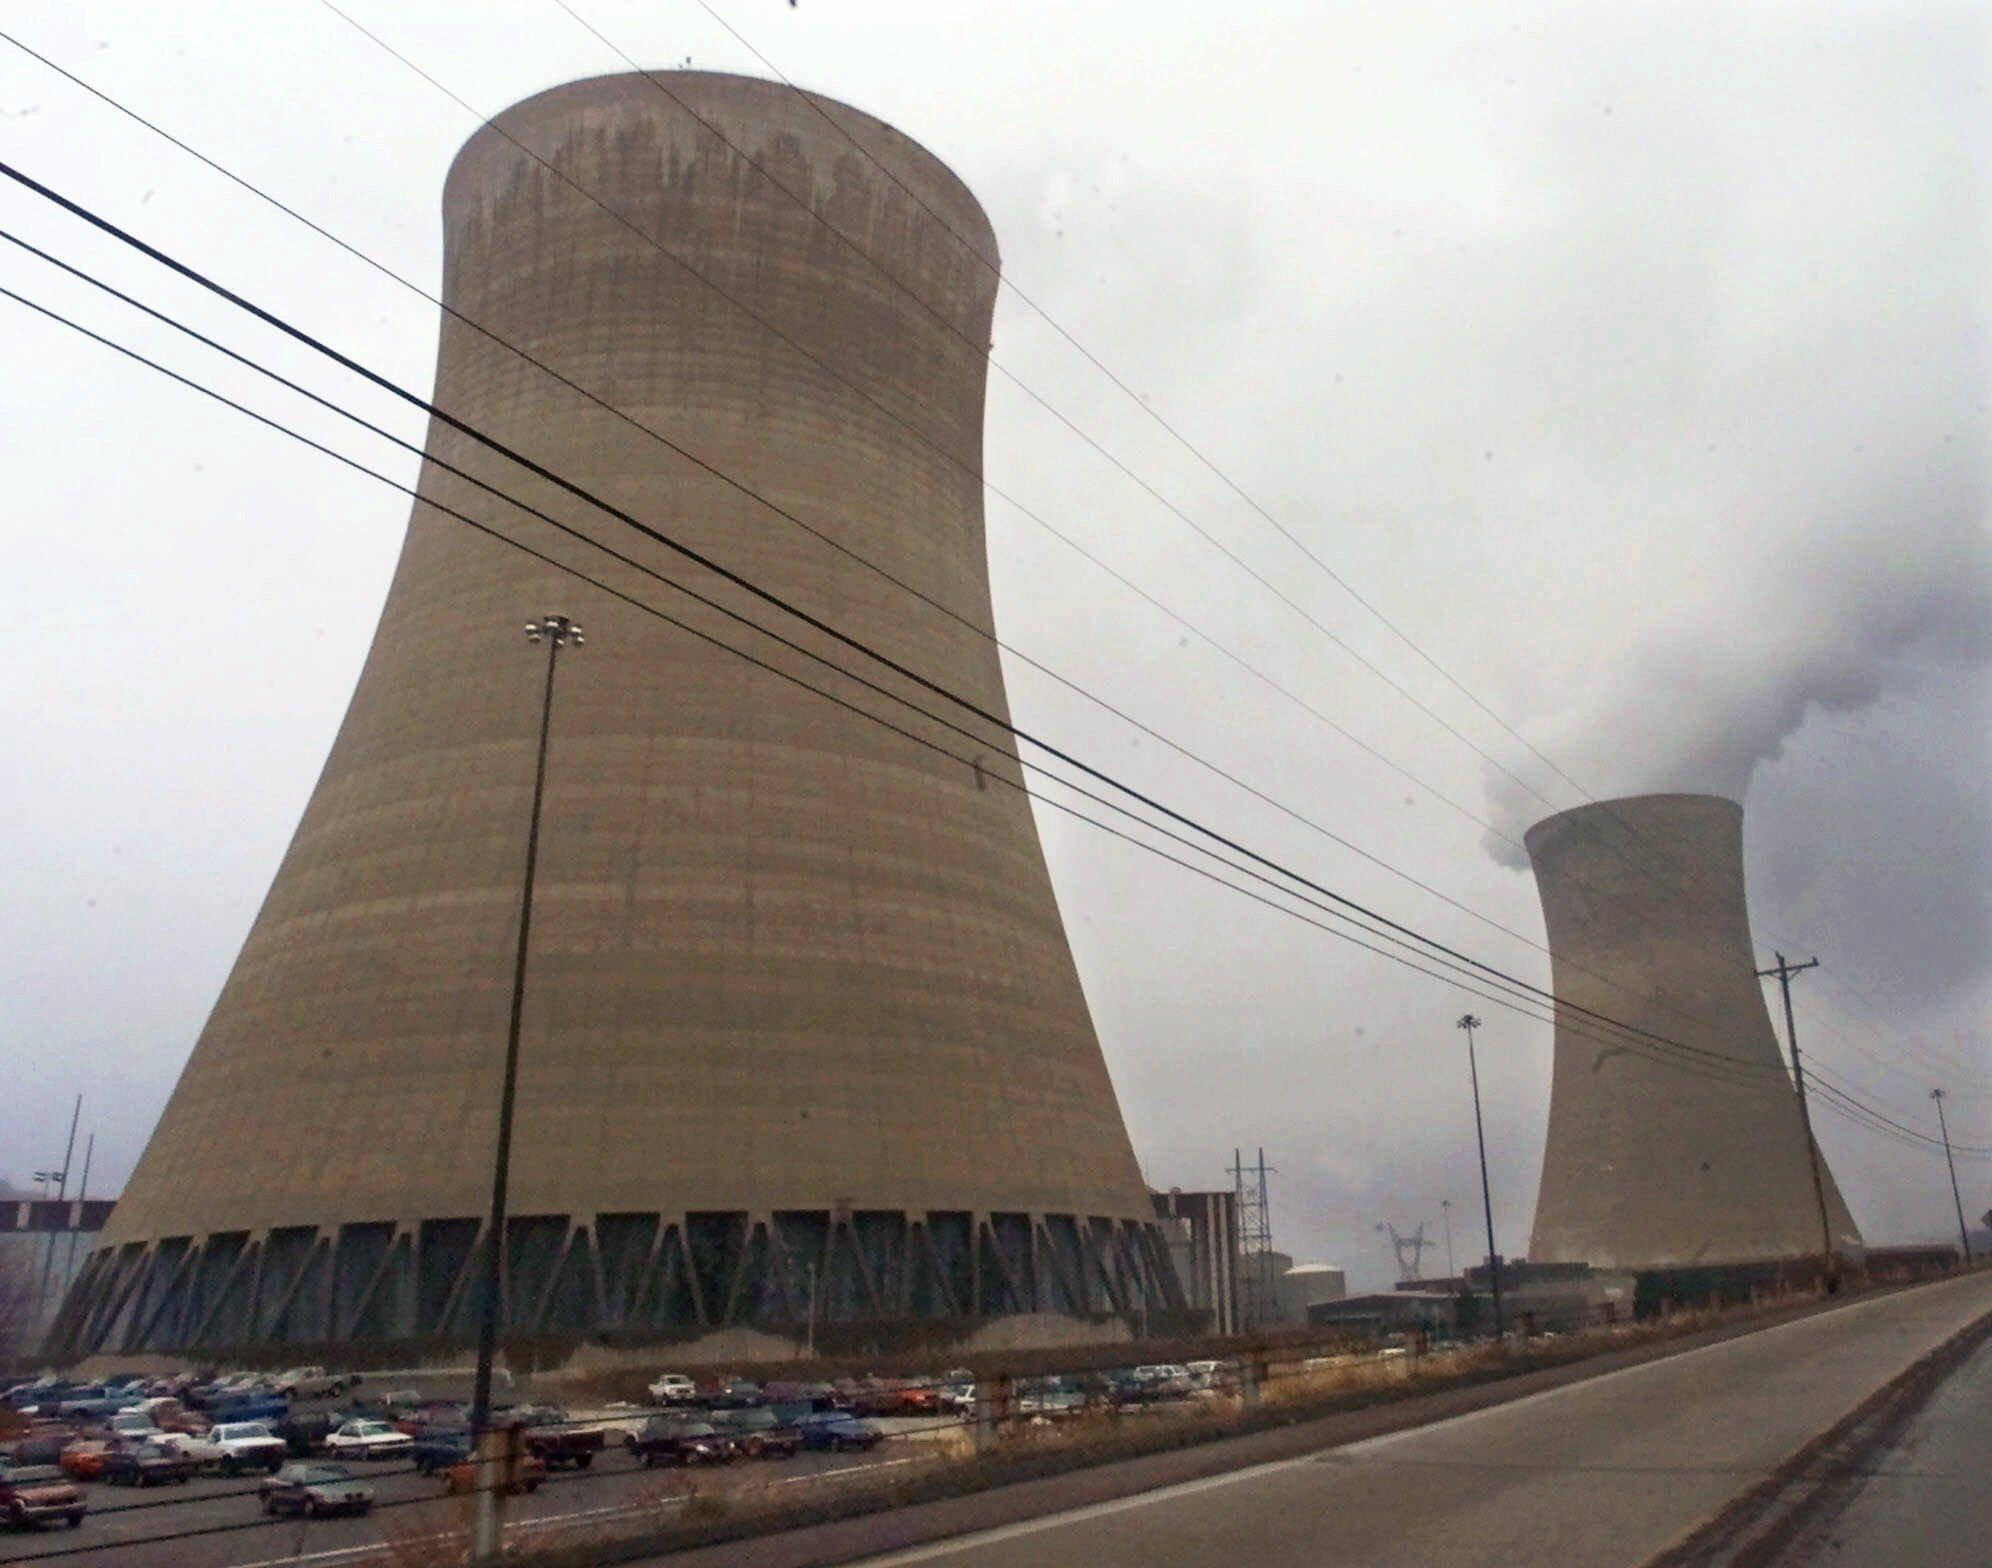 A second nuclear plant in Pa. to shut down, company announces